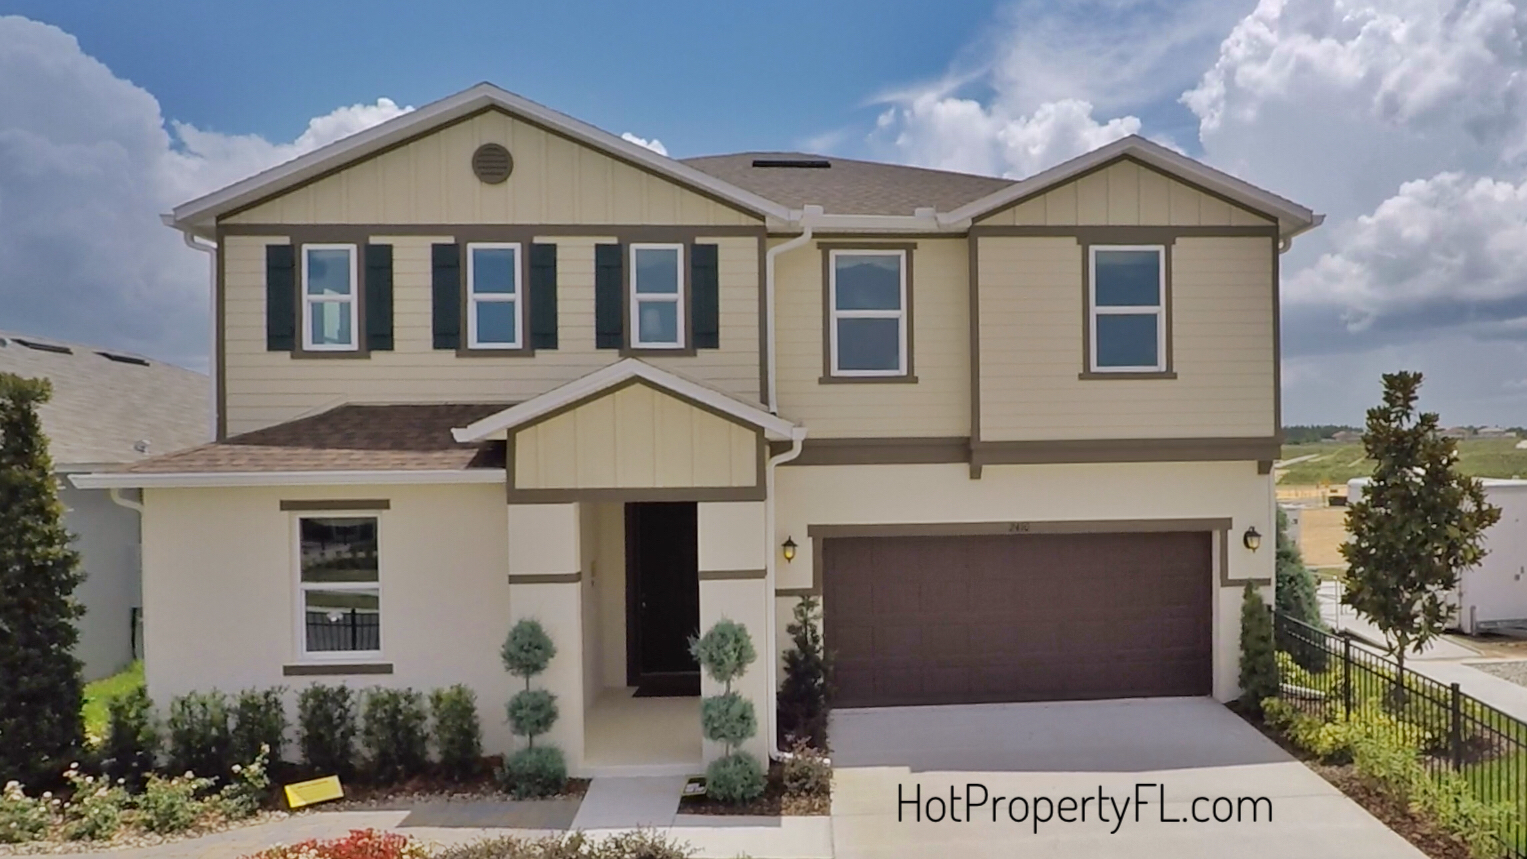 Homes for sale, Magnolia at westside, davenport fl.